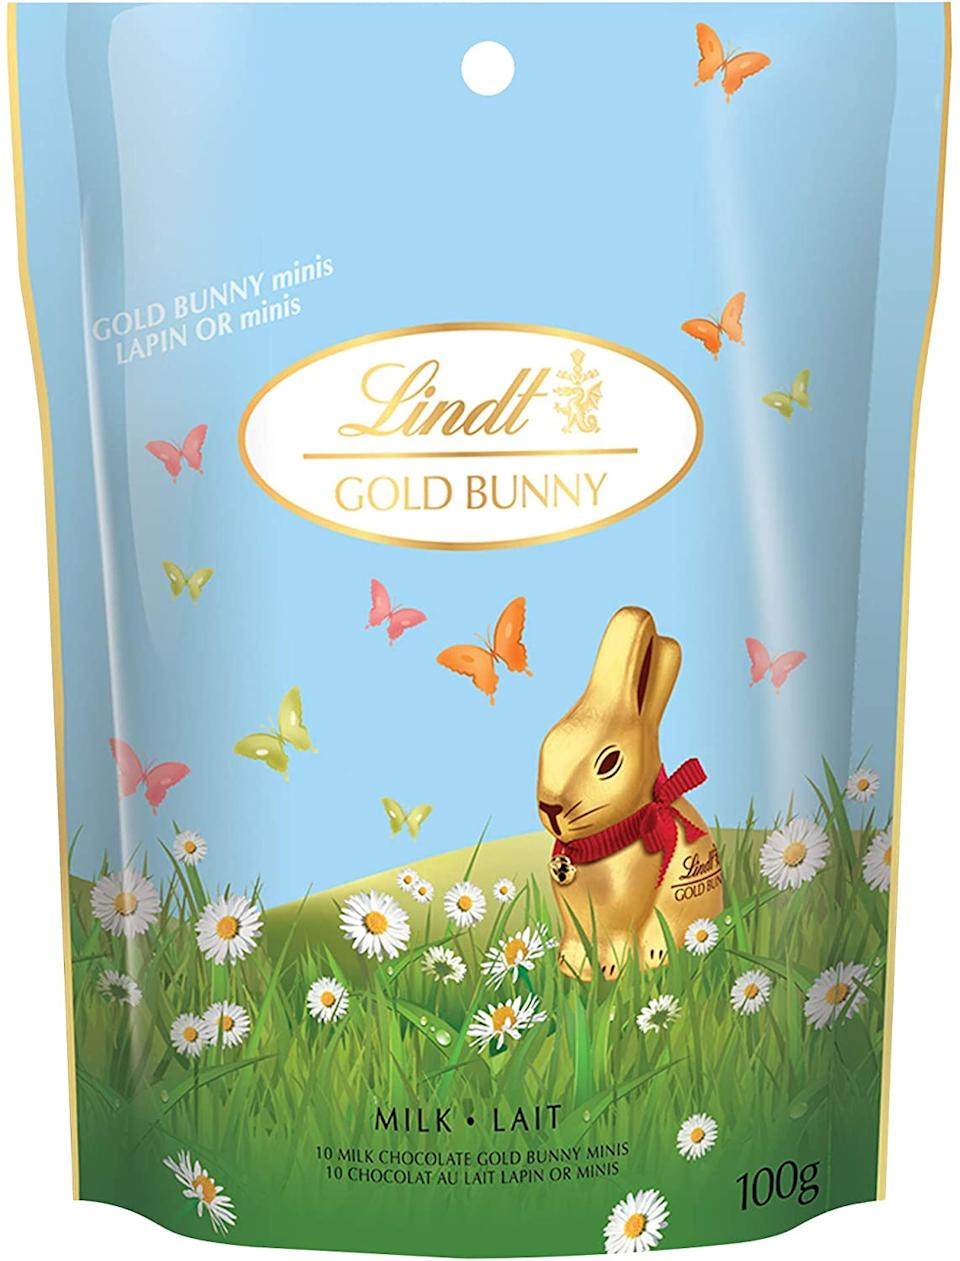 Lindt Miniature Milk Chocolate Easter Gold Bunny. Image via Amazon.